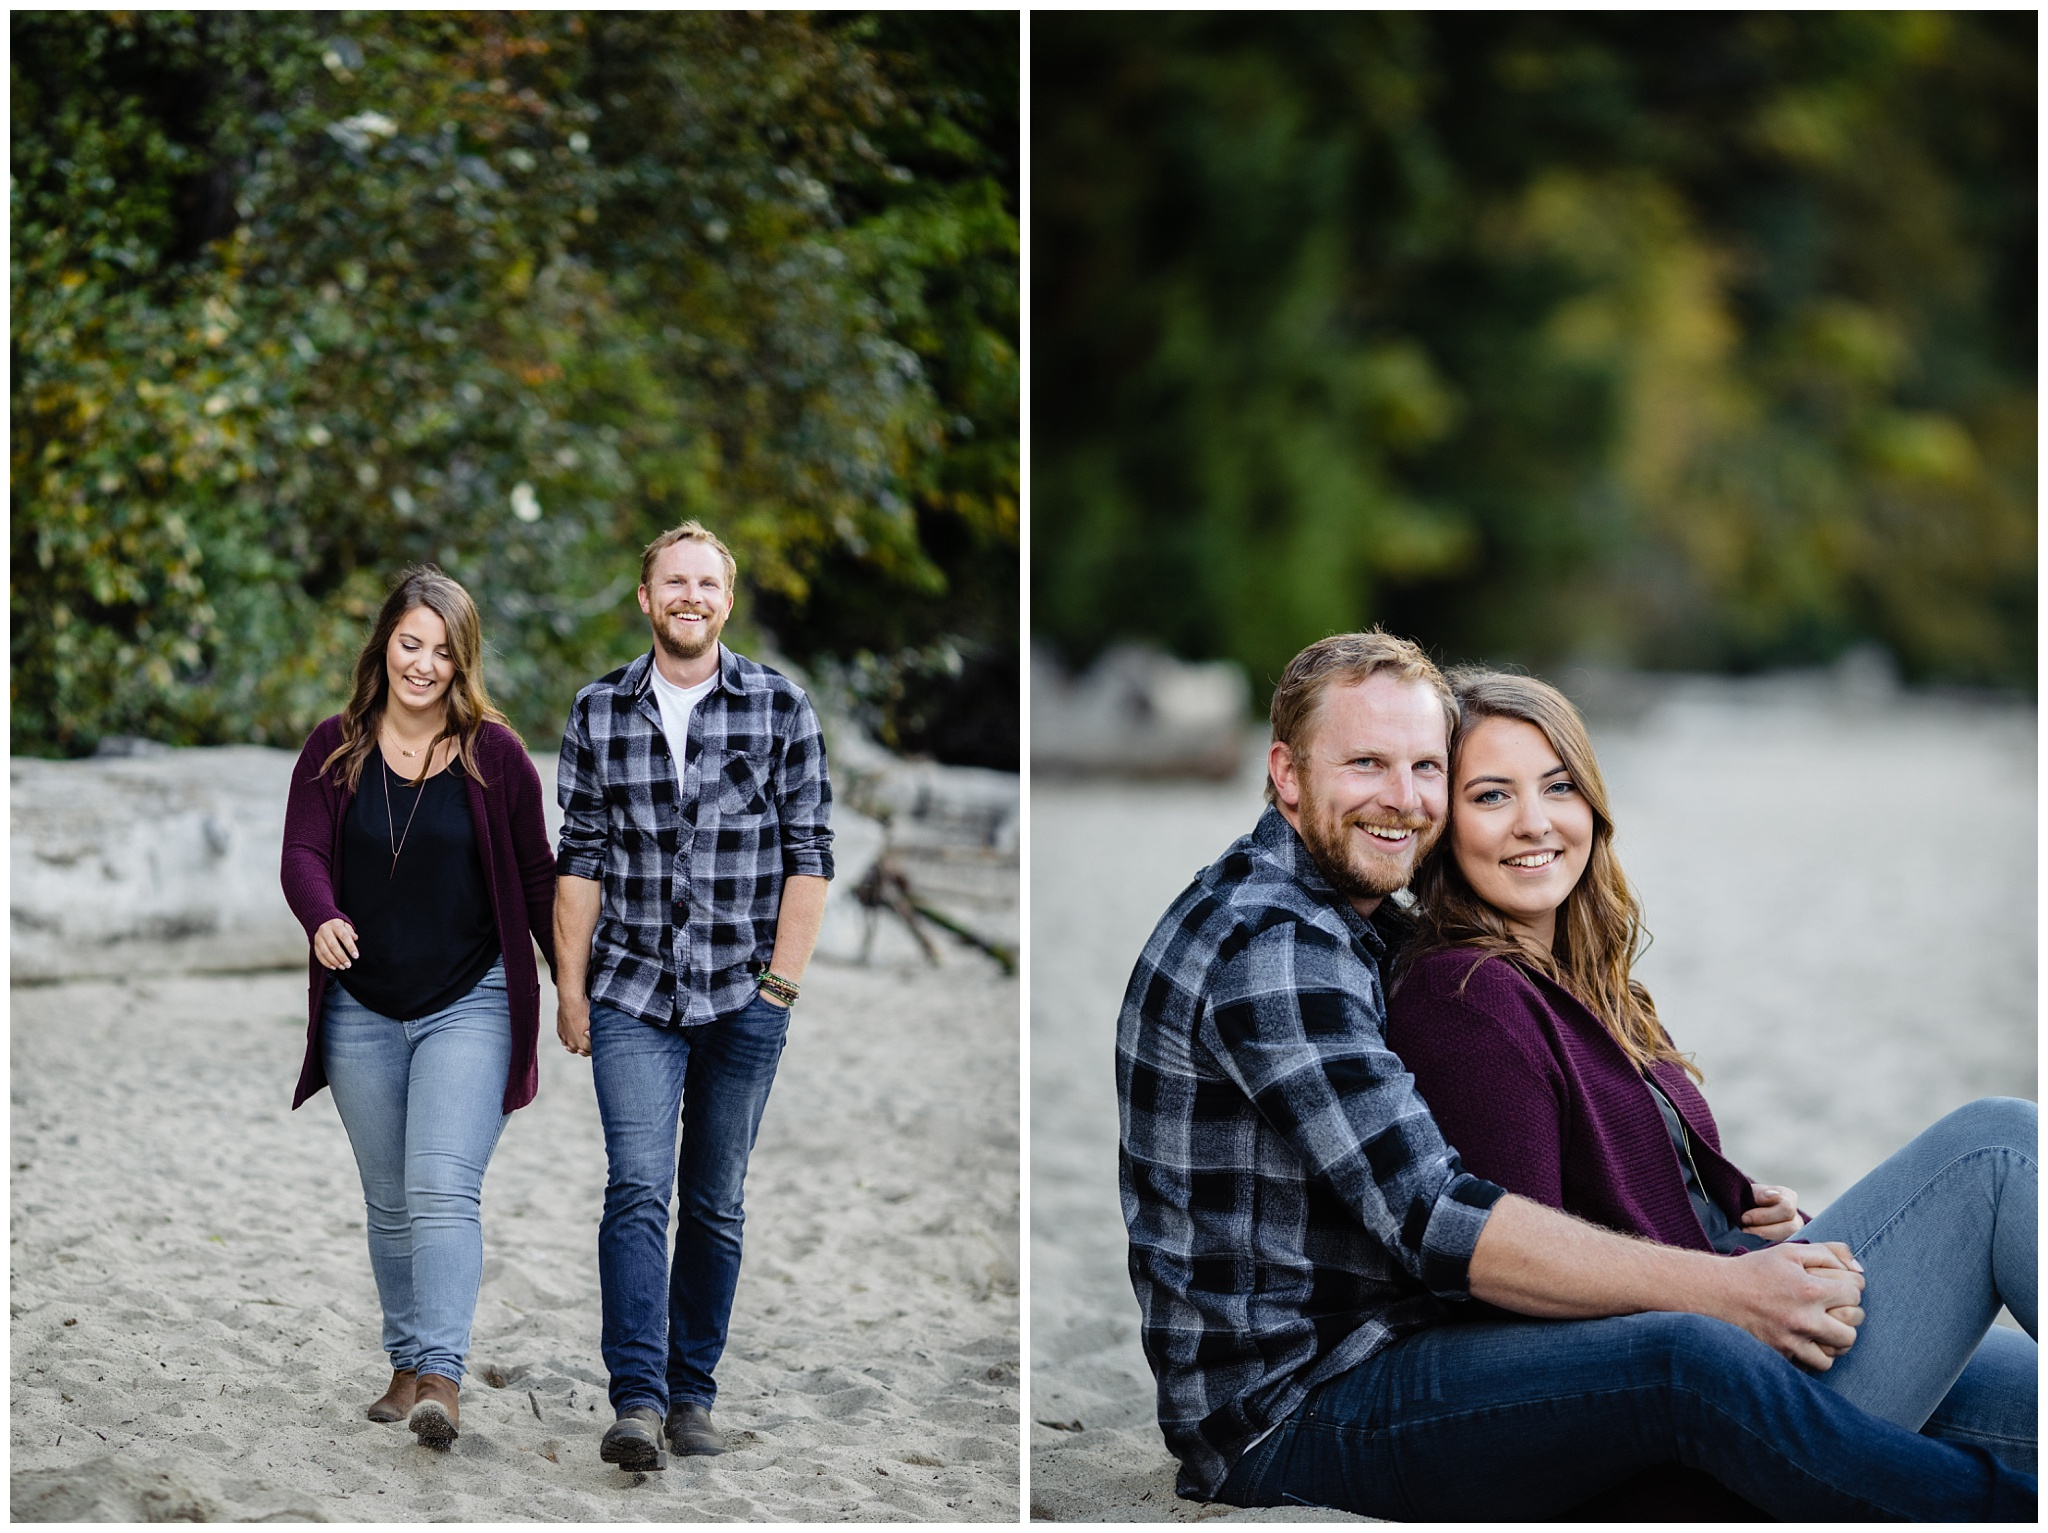 Chilliwack Lake Fall Engagement Photo Inspiration Poses Chilliwack Engagement Photographer_0007.jpg